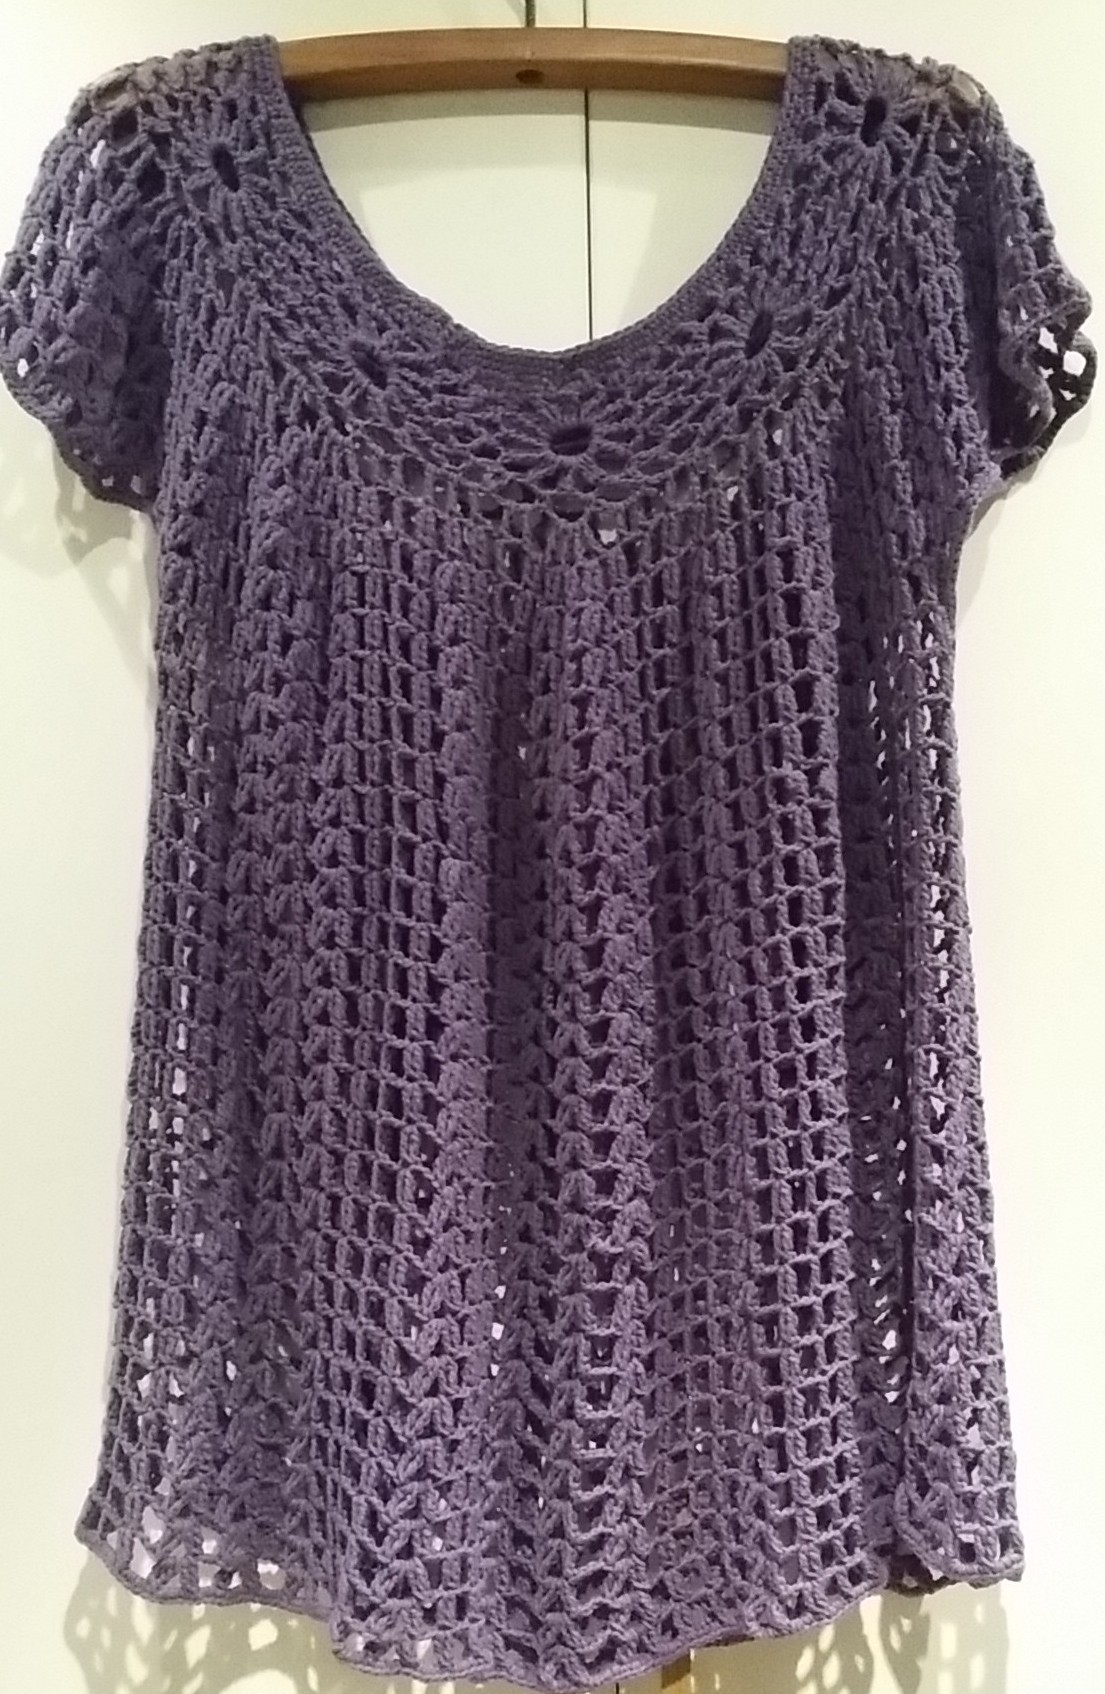 virkad tunika i alara bomullsgarn crochet cotton yarn top tunic dress